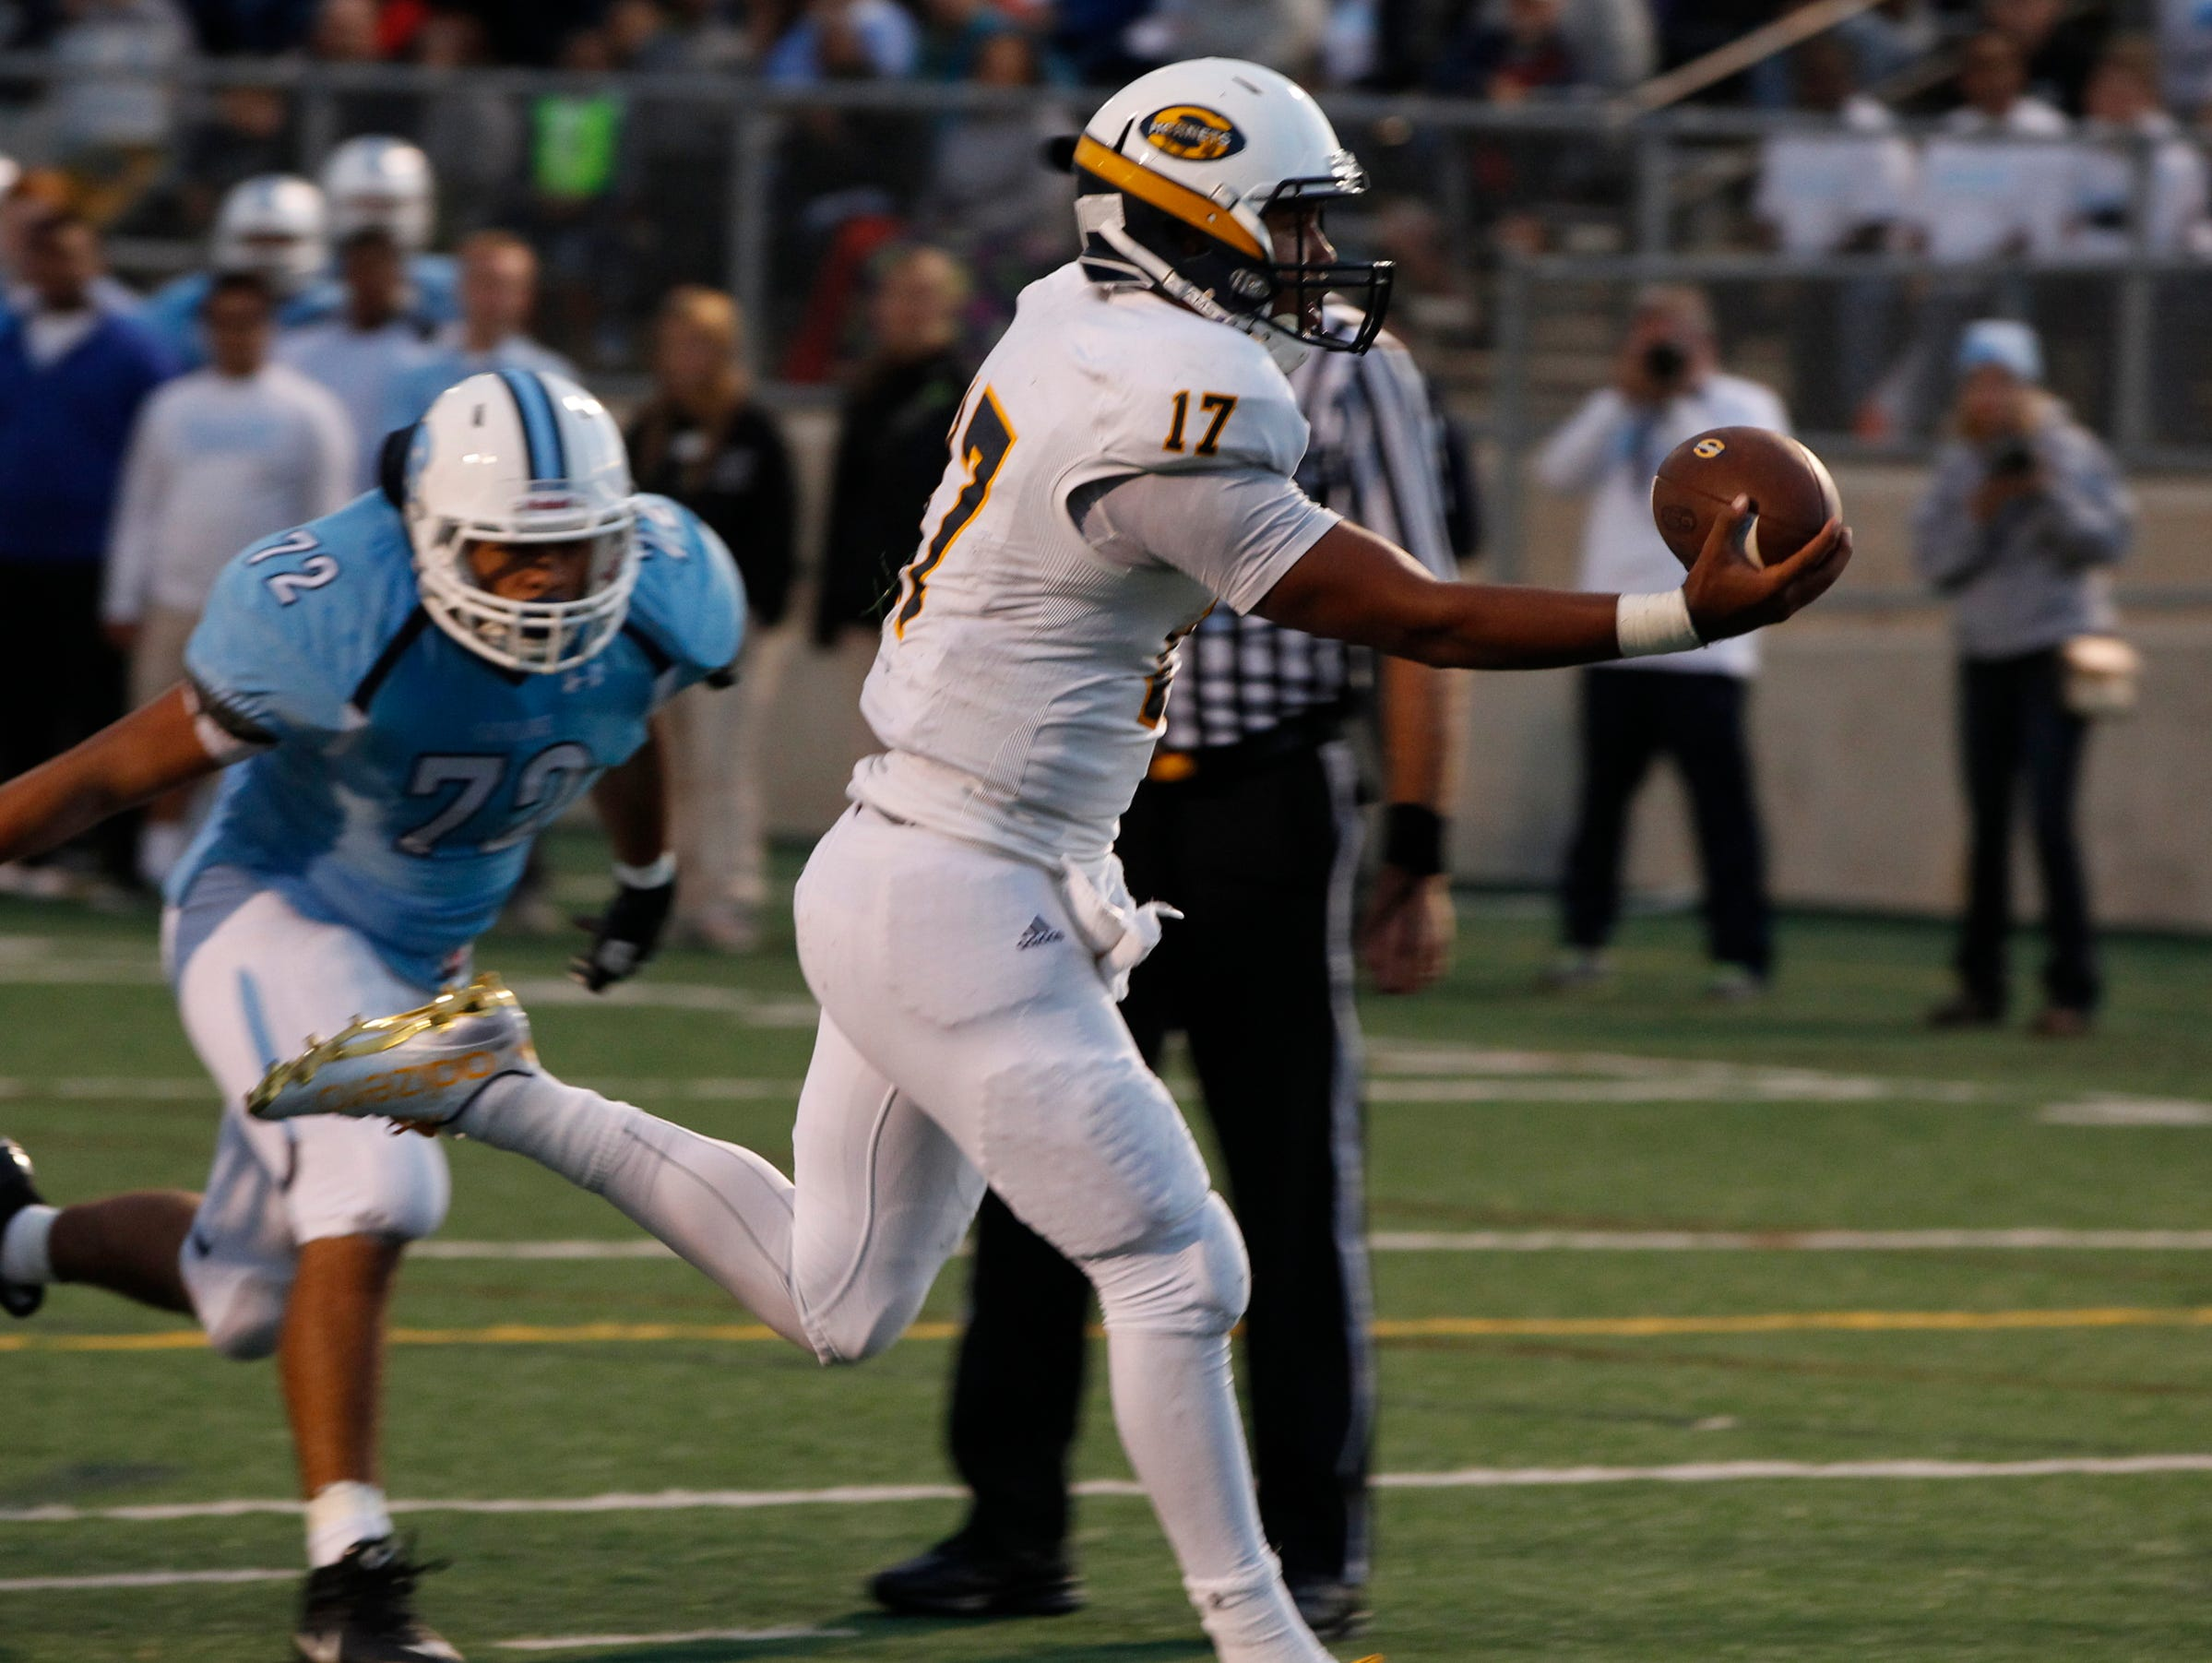 Saline quarterback Josh Jackson holds the ball out as he crosses the goal line for a touchdown and 17-0 lead over Ann Arbor Skyline high school on Friday, September 11, 2015, in Ann Arbor.